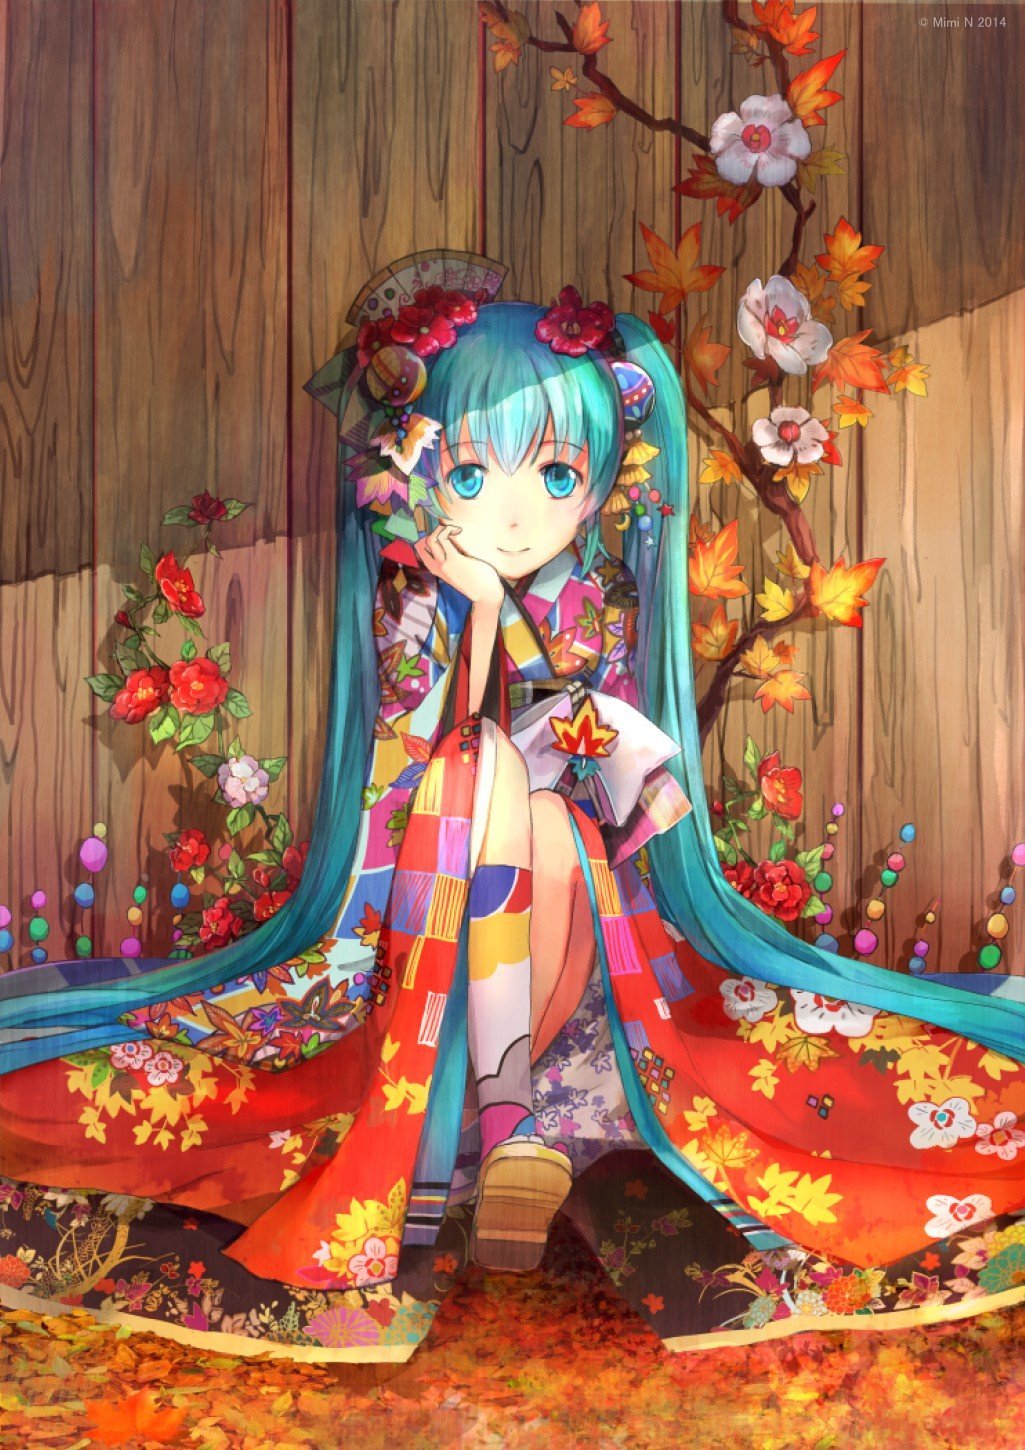 17 Best images about Anime - Kimono and Other Traditional ... |Traditional Kimono Anime